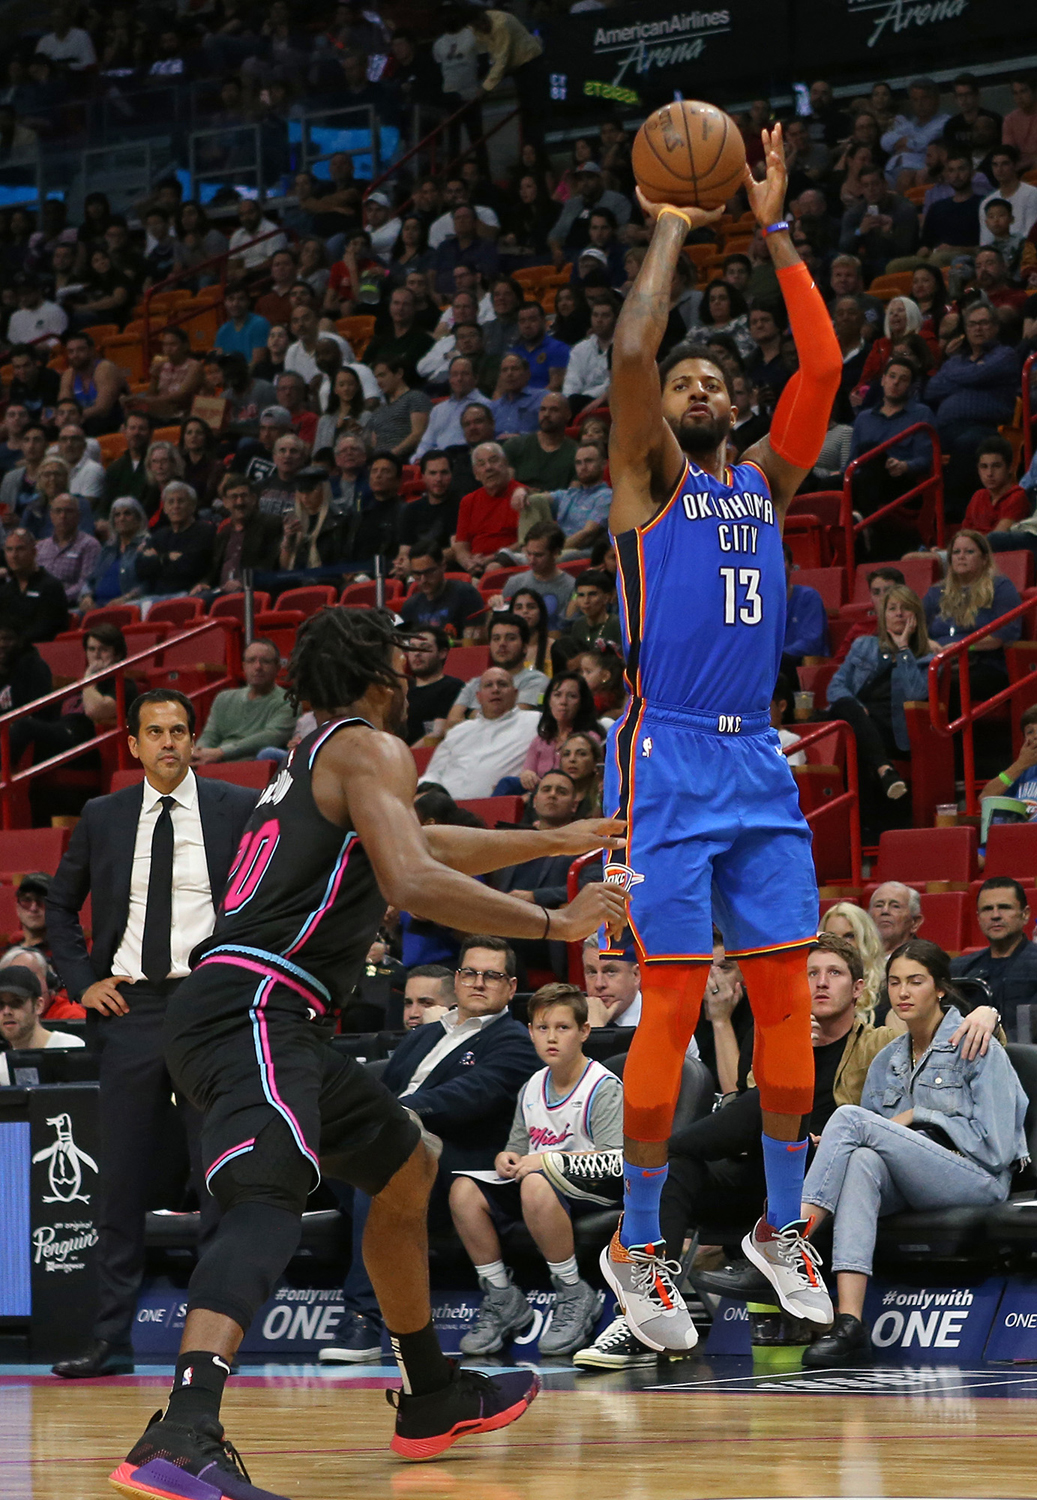 The Oklahoma City Thunder's Paul George (13) shoots over the Miami Heat's Justise Winslow in the third quarter at AmericanAirlines Arena in Miami on Feb. 1. The Thunder won, 118-102.